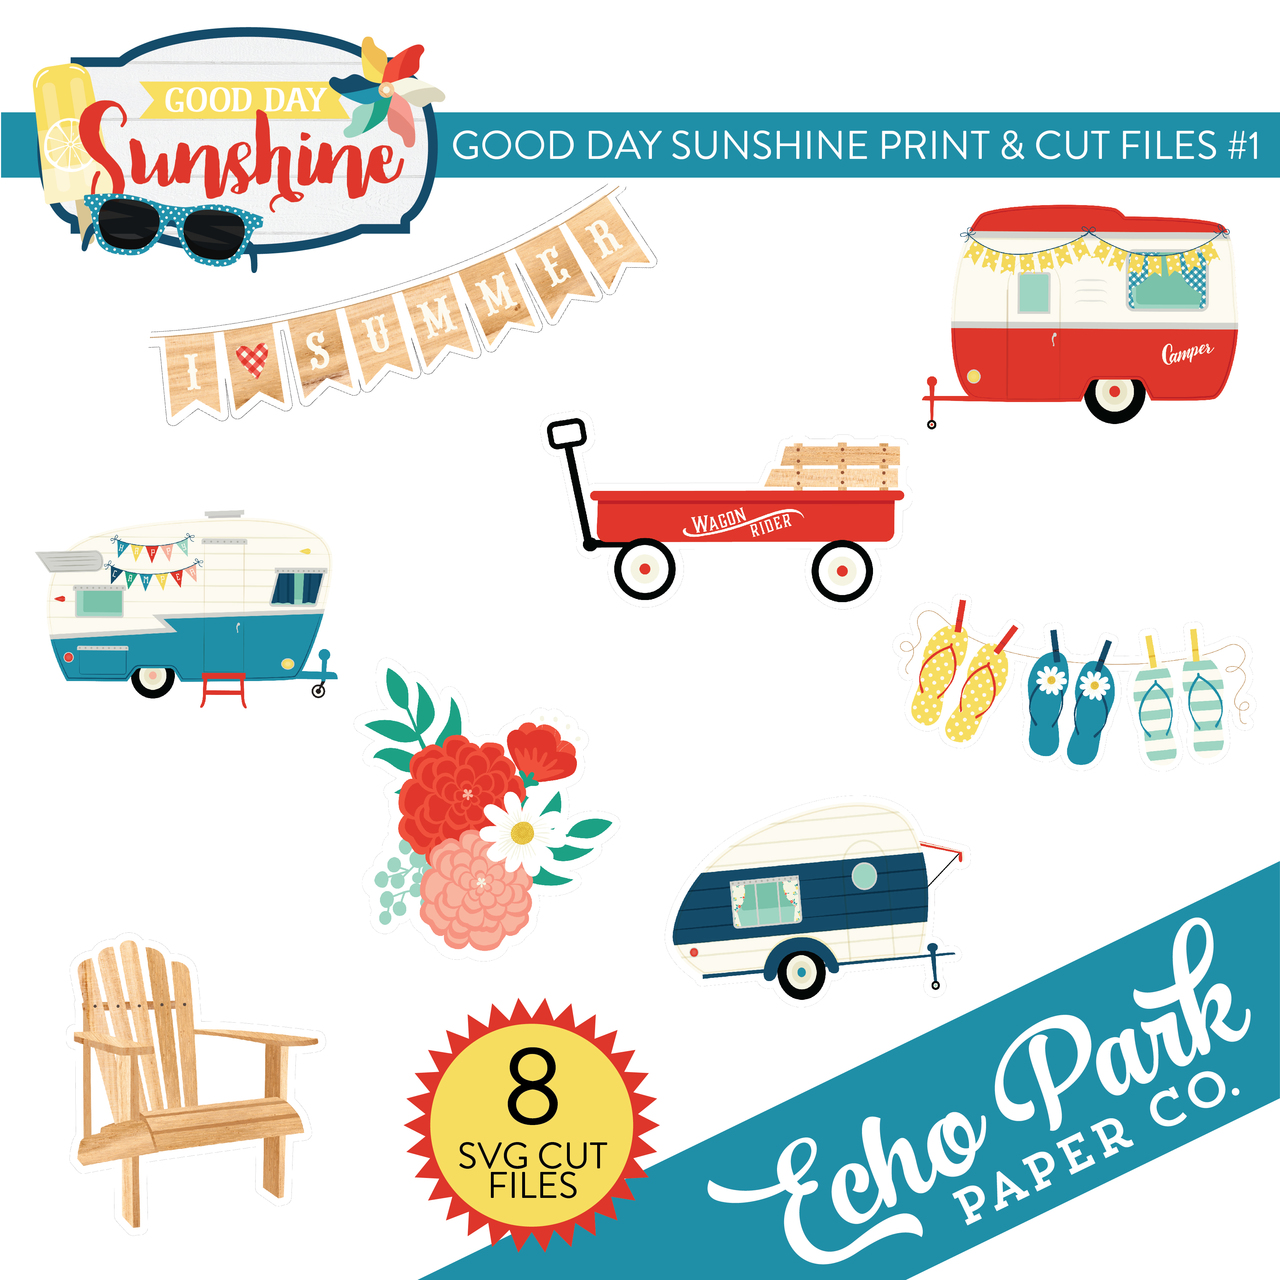 Good Day Sunshine Print & Cut Files #1